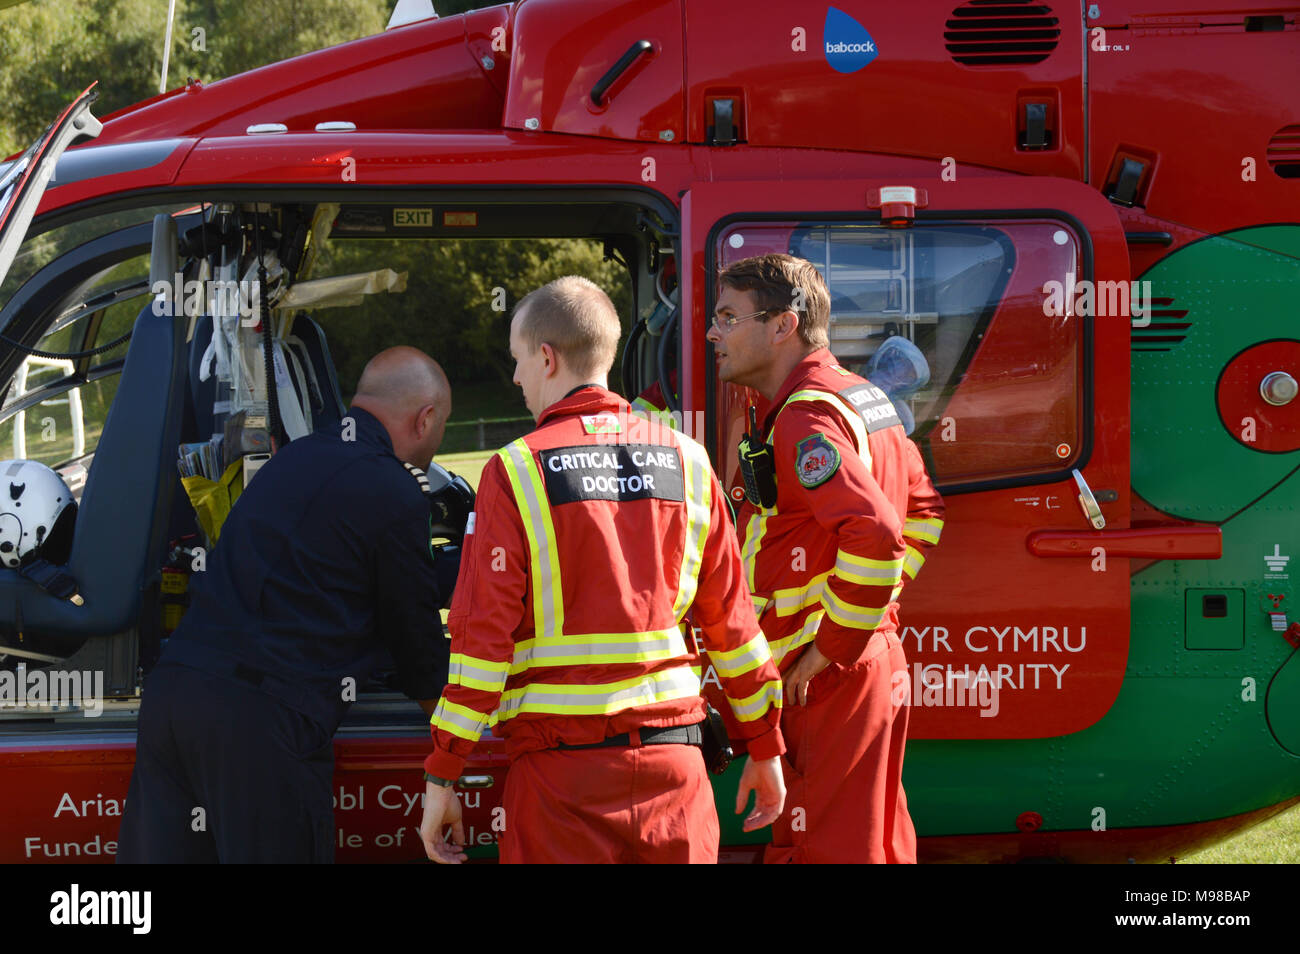 Medical crew members and the pilot outside a helicopter of the Wales Air Ambulance service Stock Photo